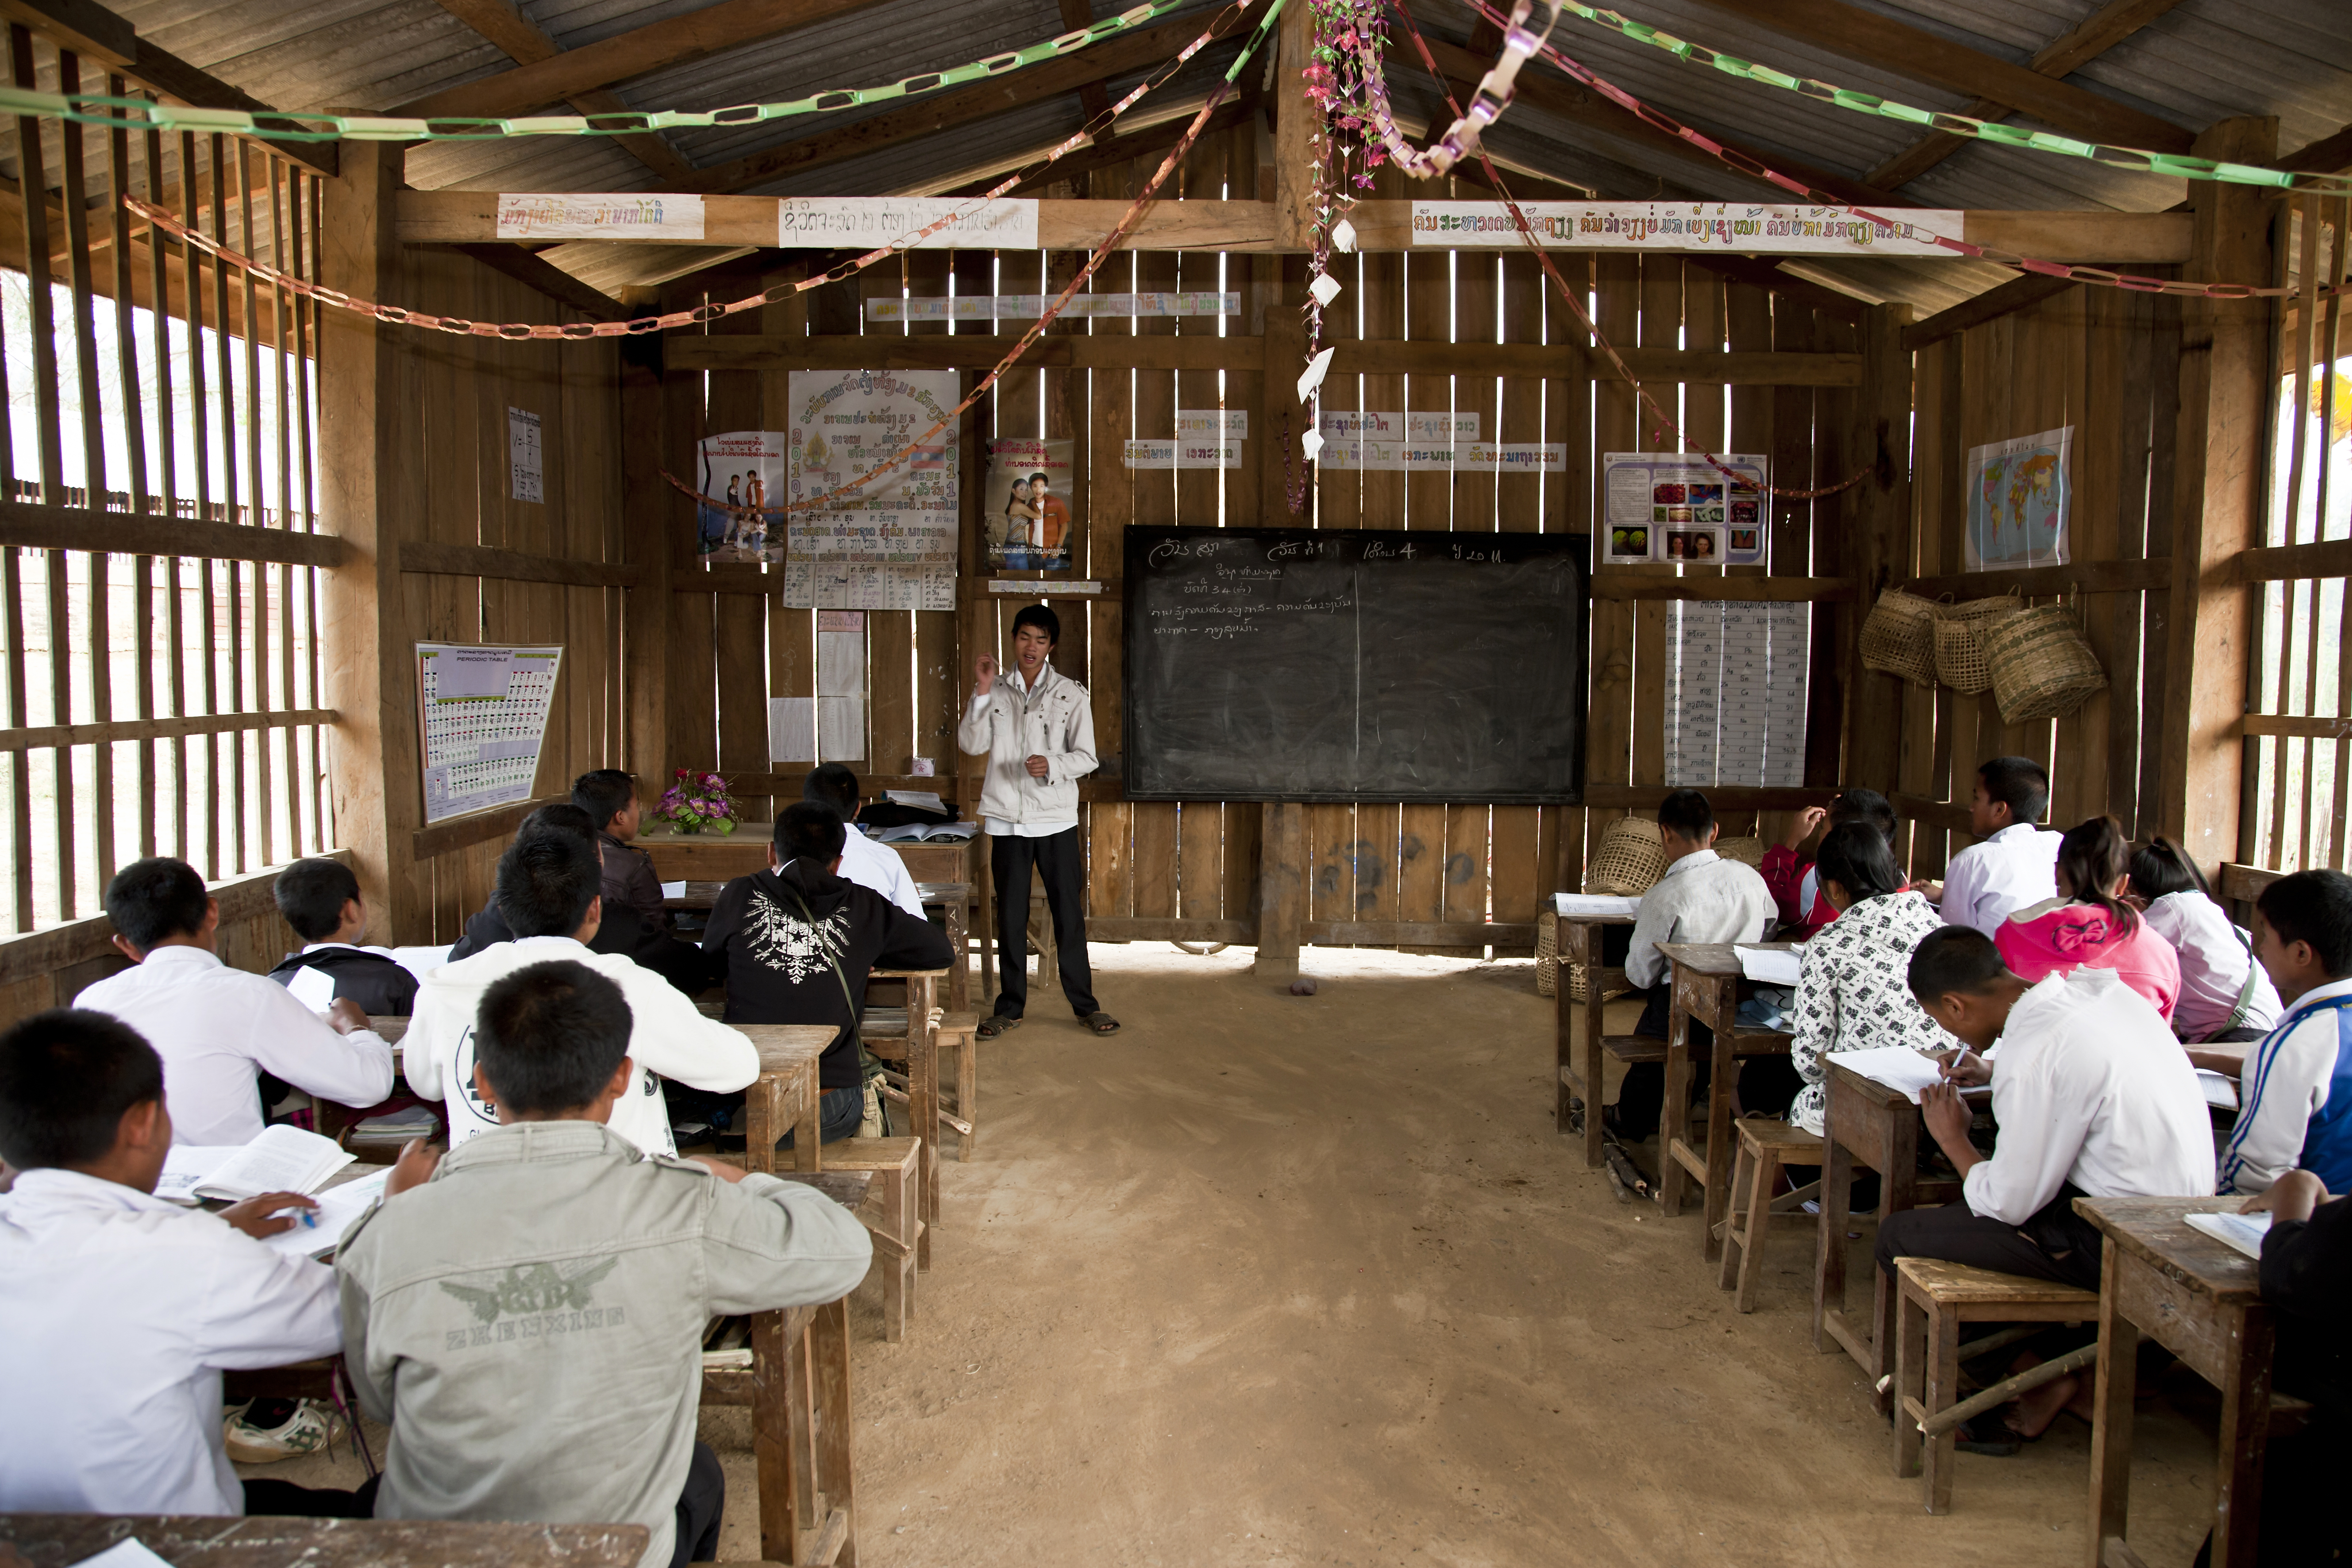 Improving teacher skills assists students to learn better at Na Thong school in Laos. Photo by Bart Verweij for AusAID